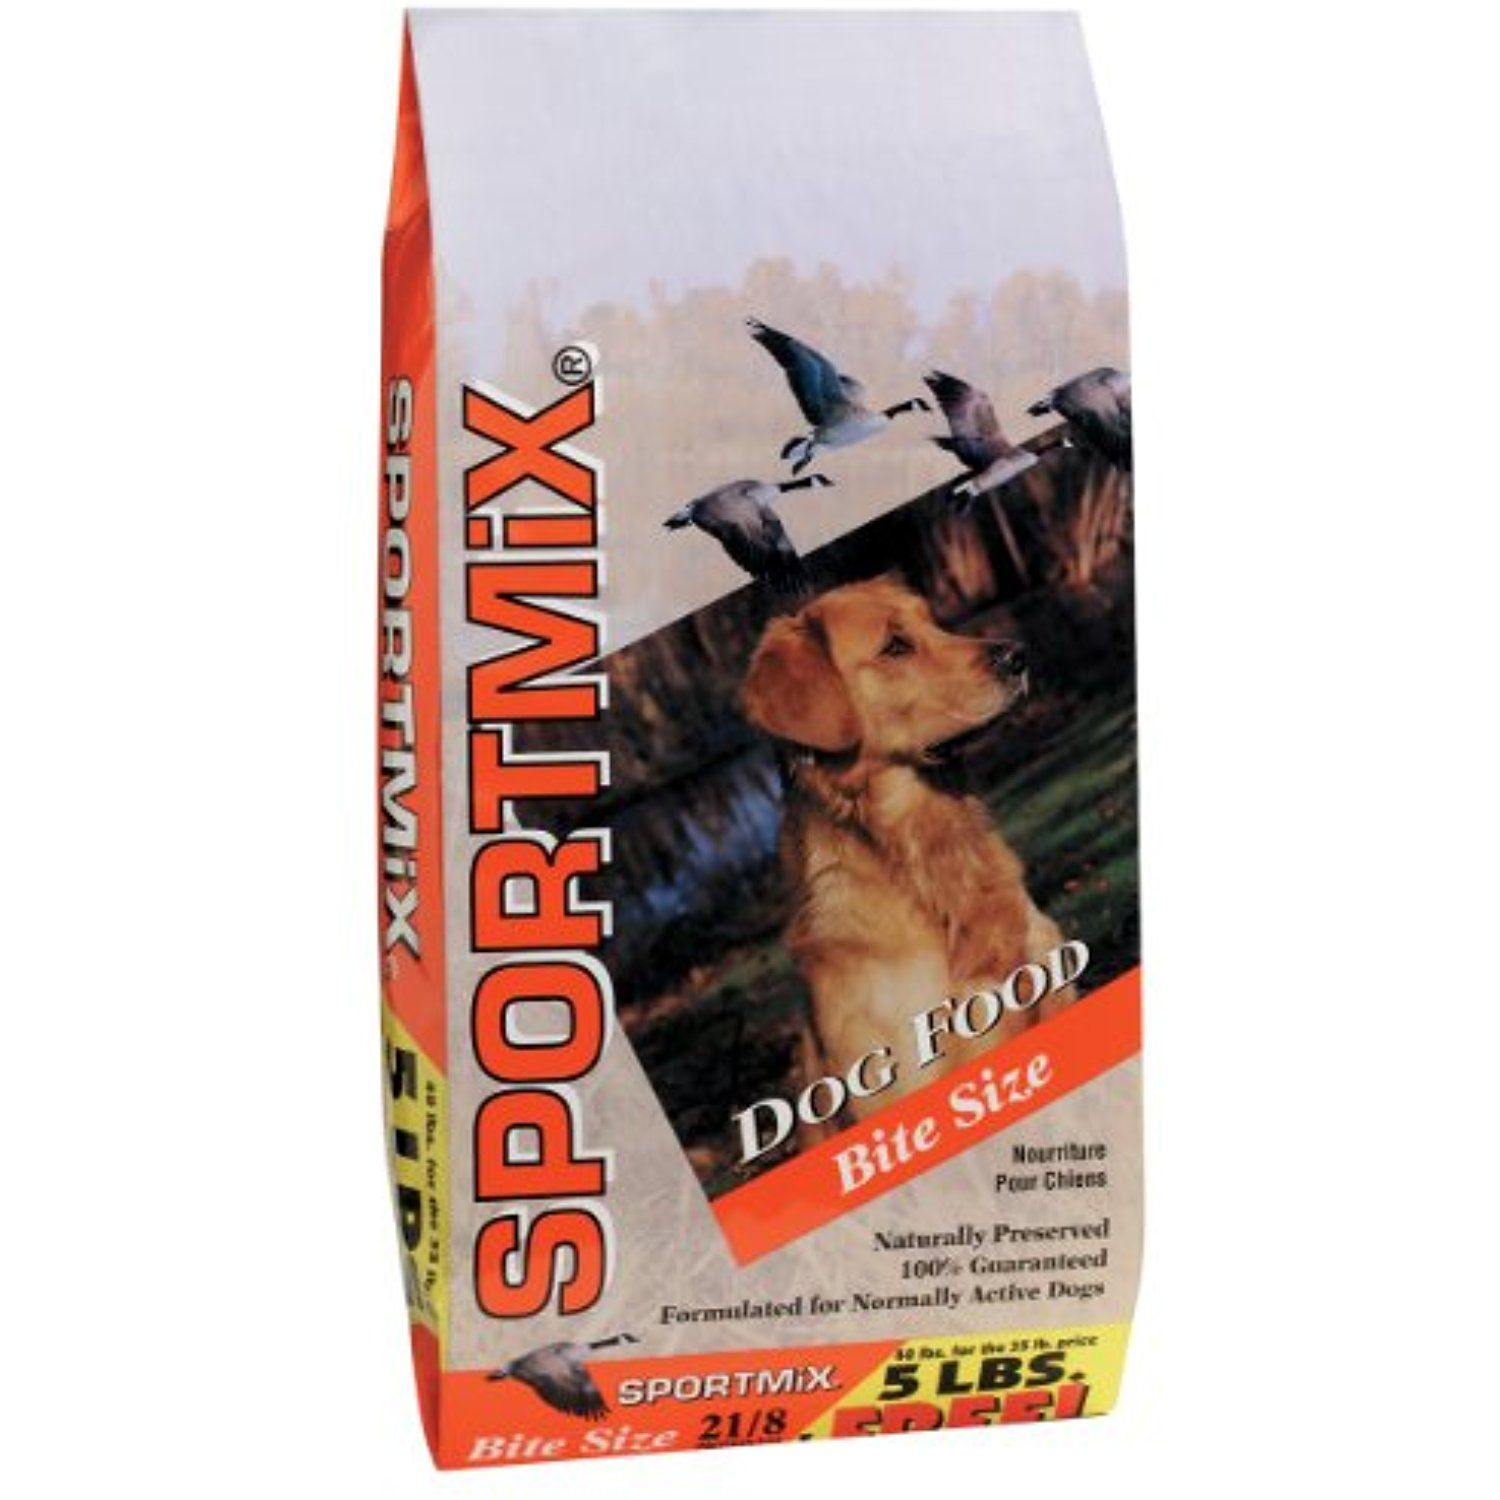 Wells Sportmix Bite Size Dog Food 40 Lb Bag To Have More Info